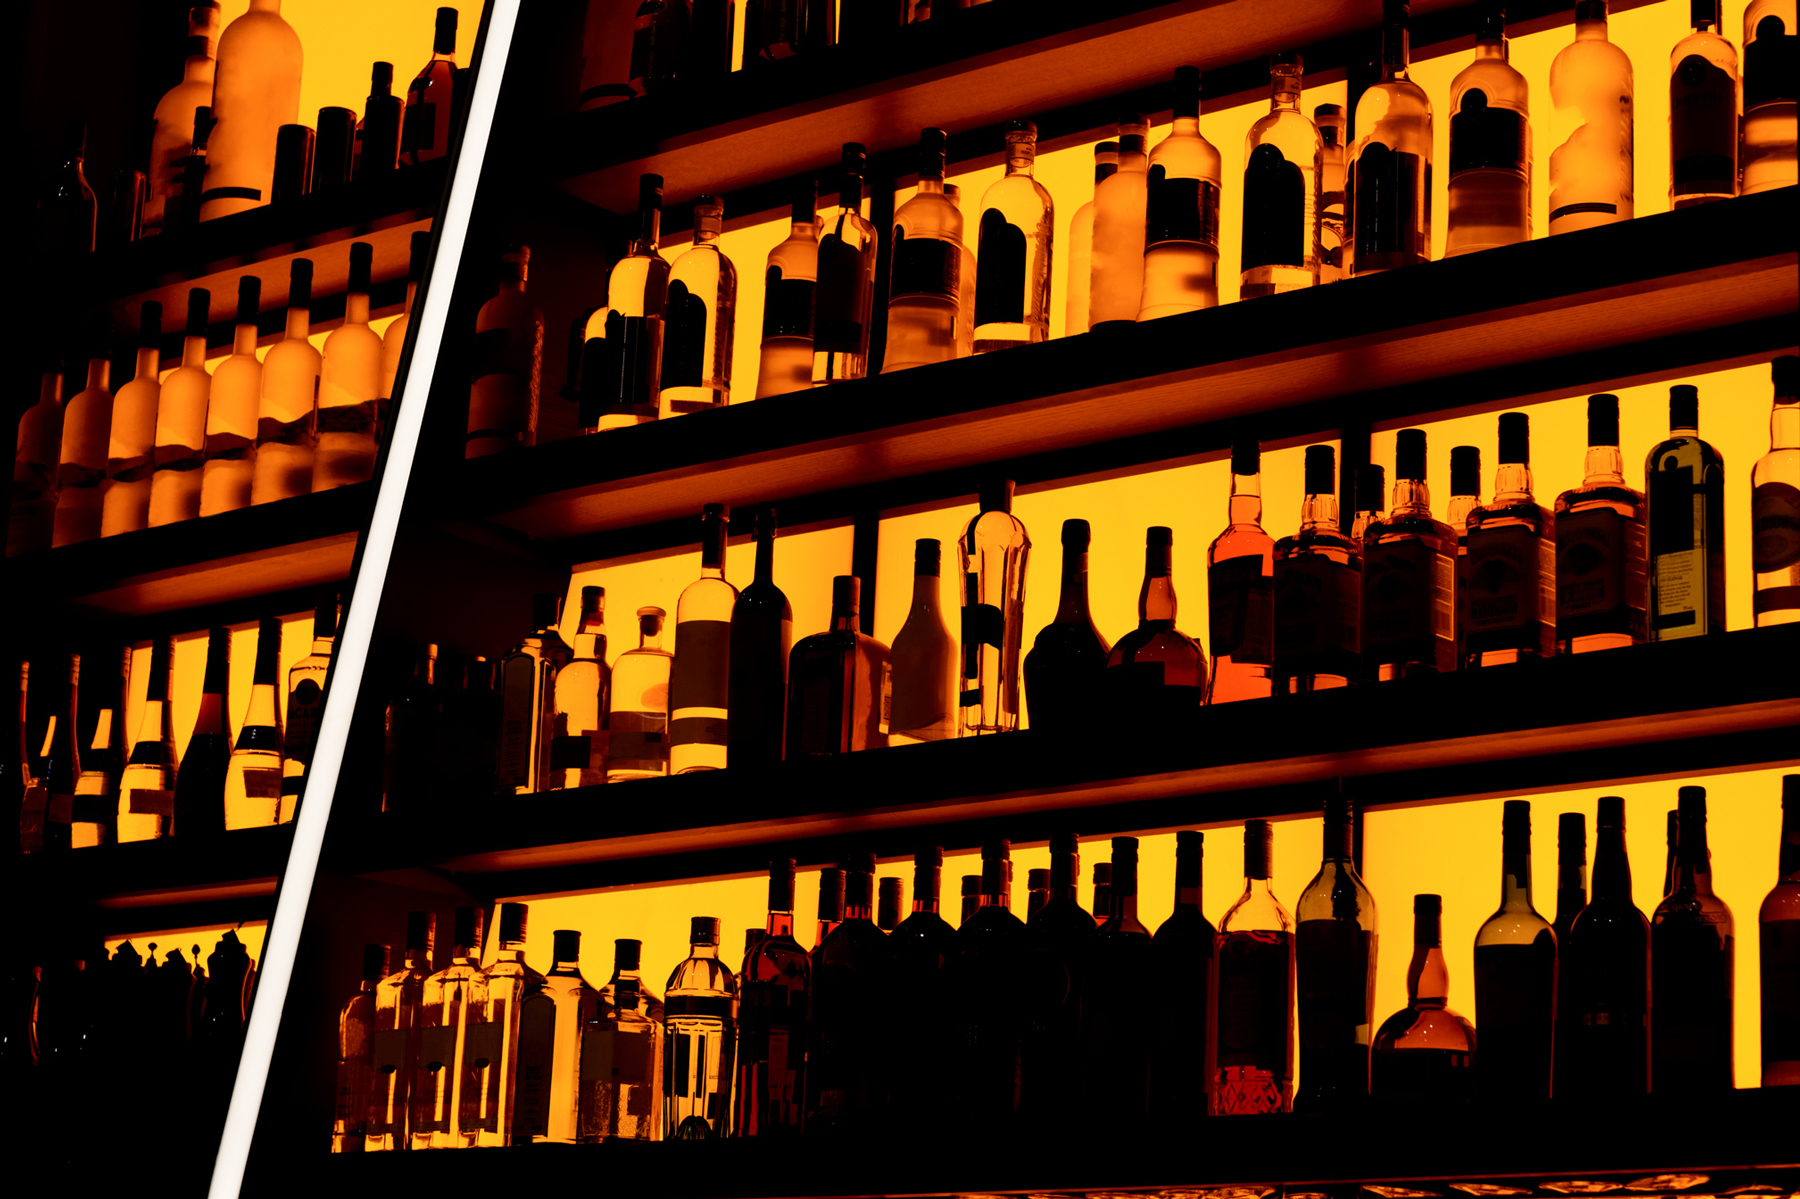 Rows of bottles sitting on shelf in a bar